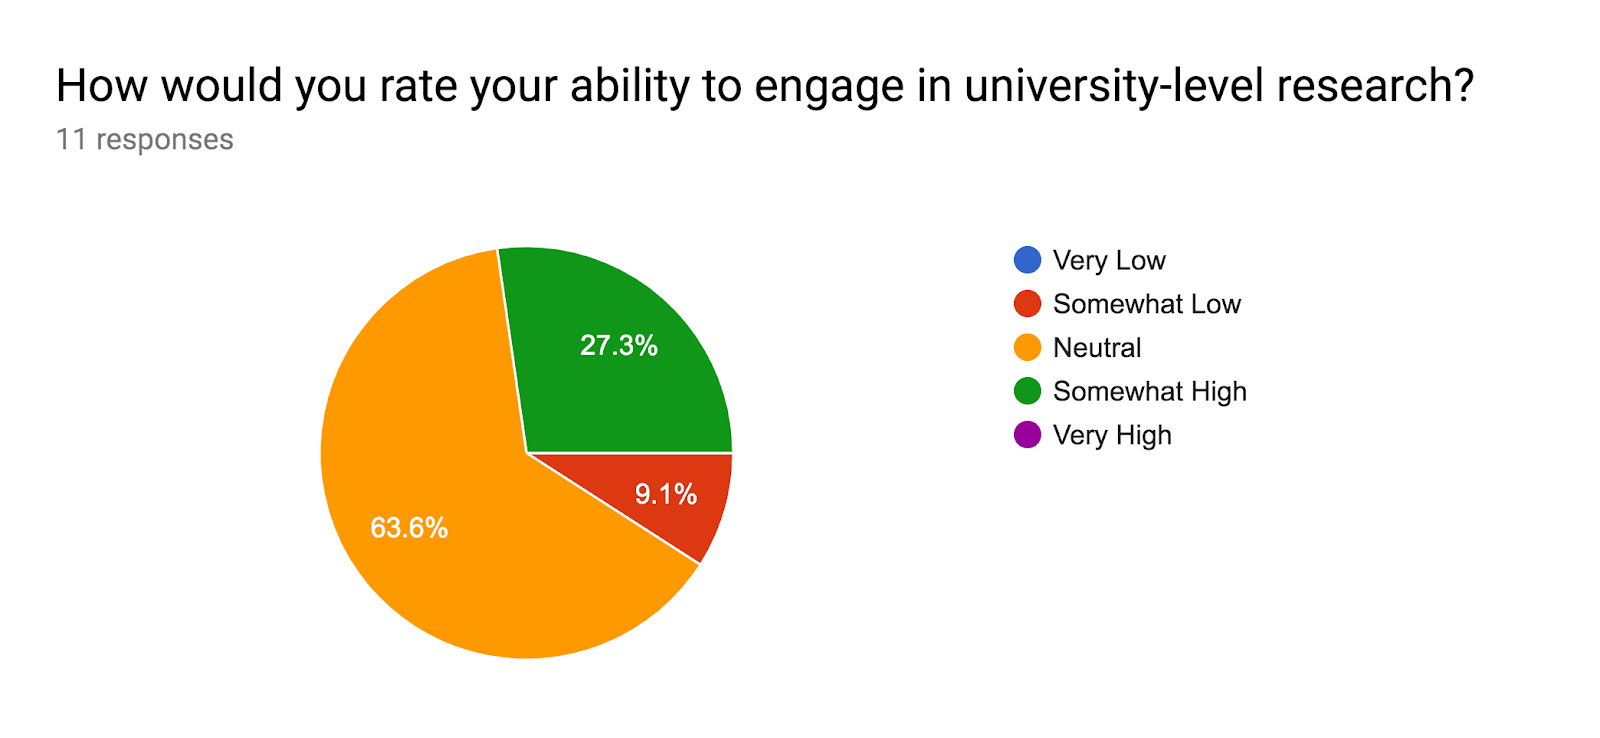 Forms response chart. Question title: How would you rate your ability to engage in university-level research?. Number of responses: 11 responses.